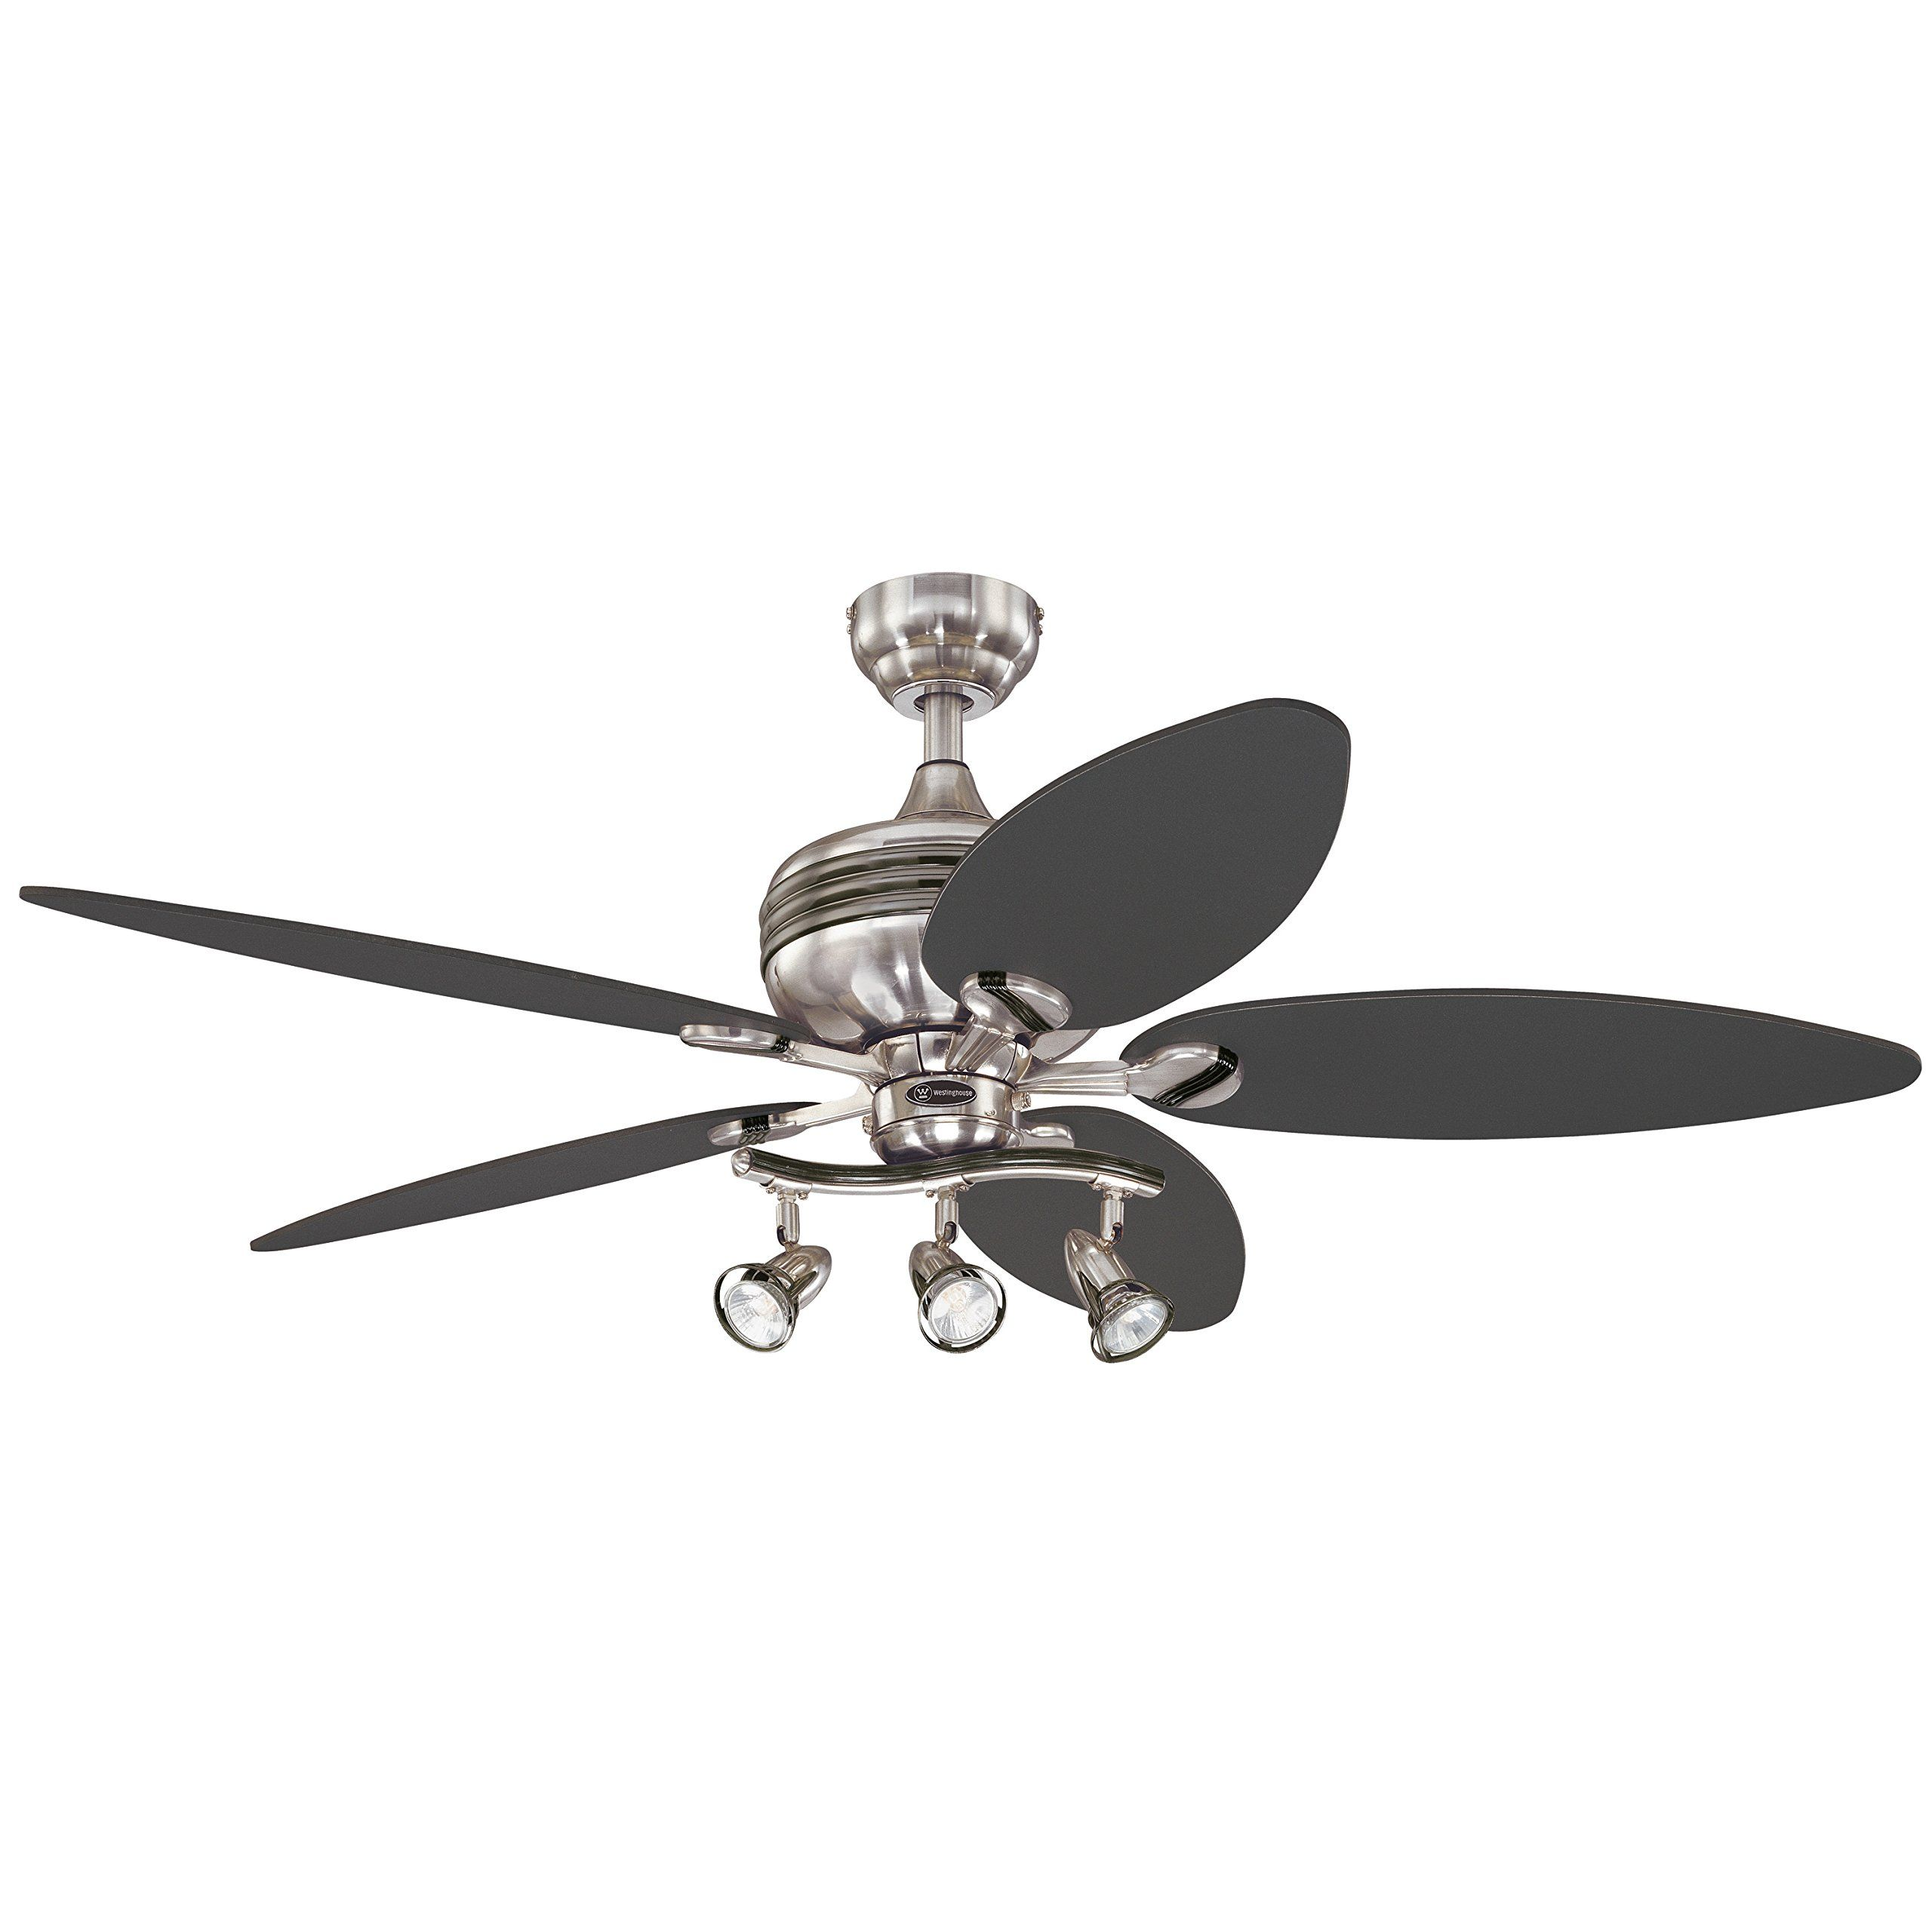 Westinghouse Xavier II 52 Inch Five Blade Indoor Ceiling